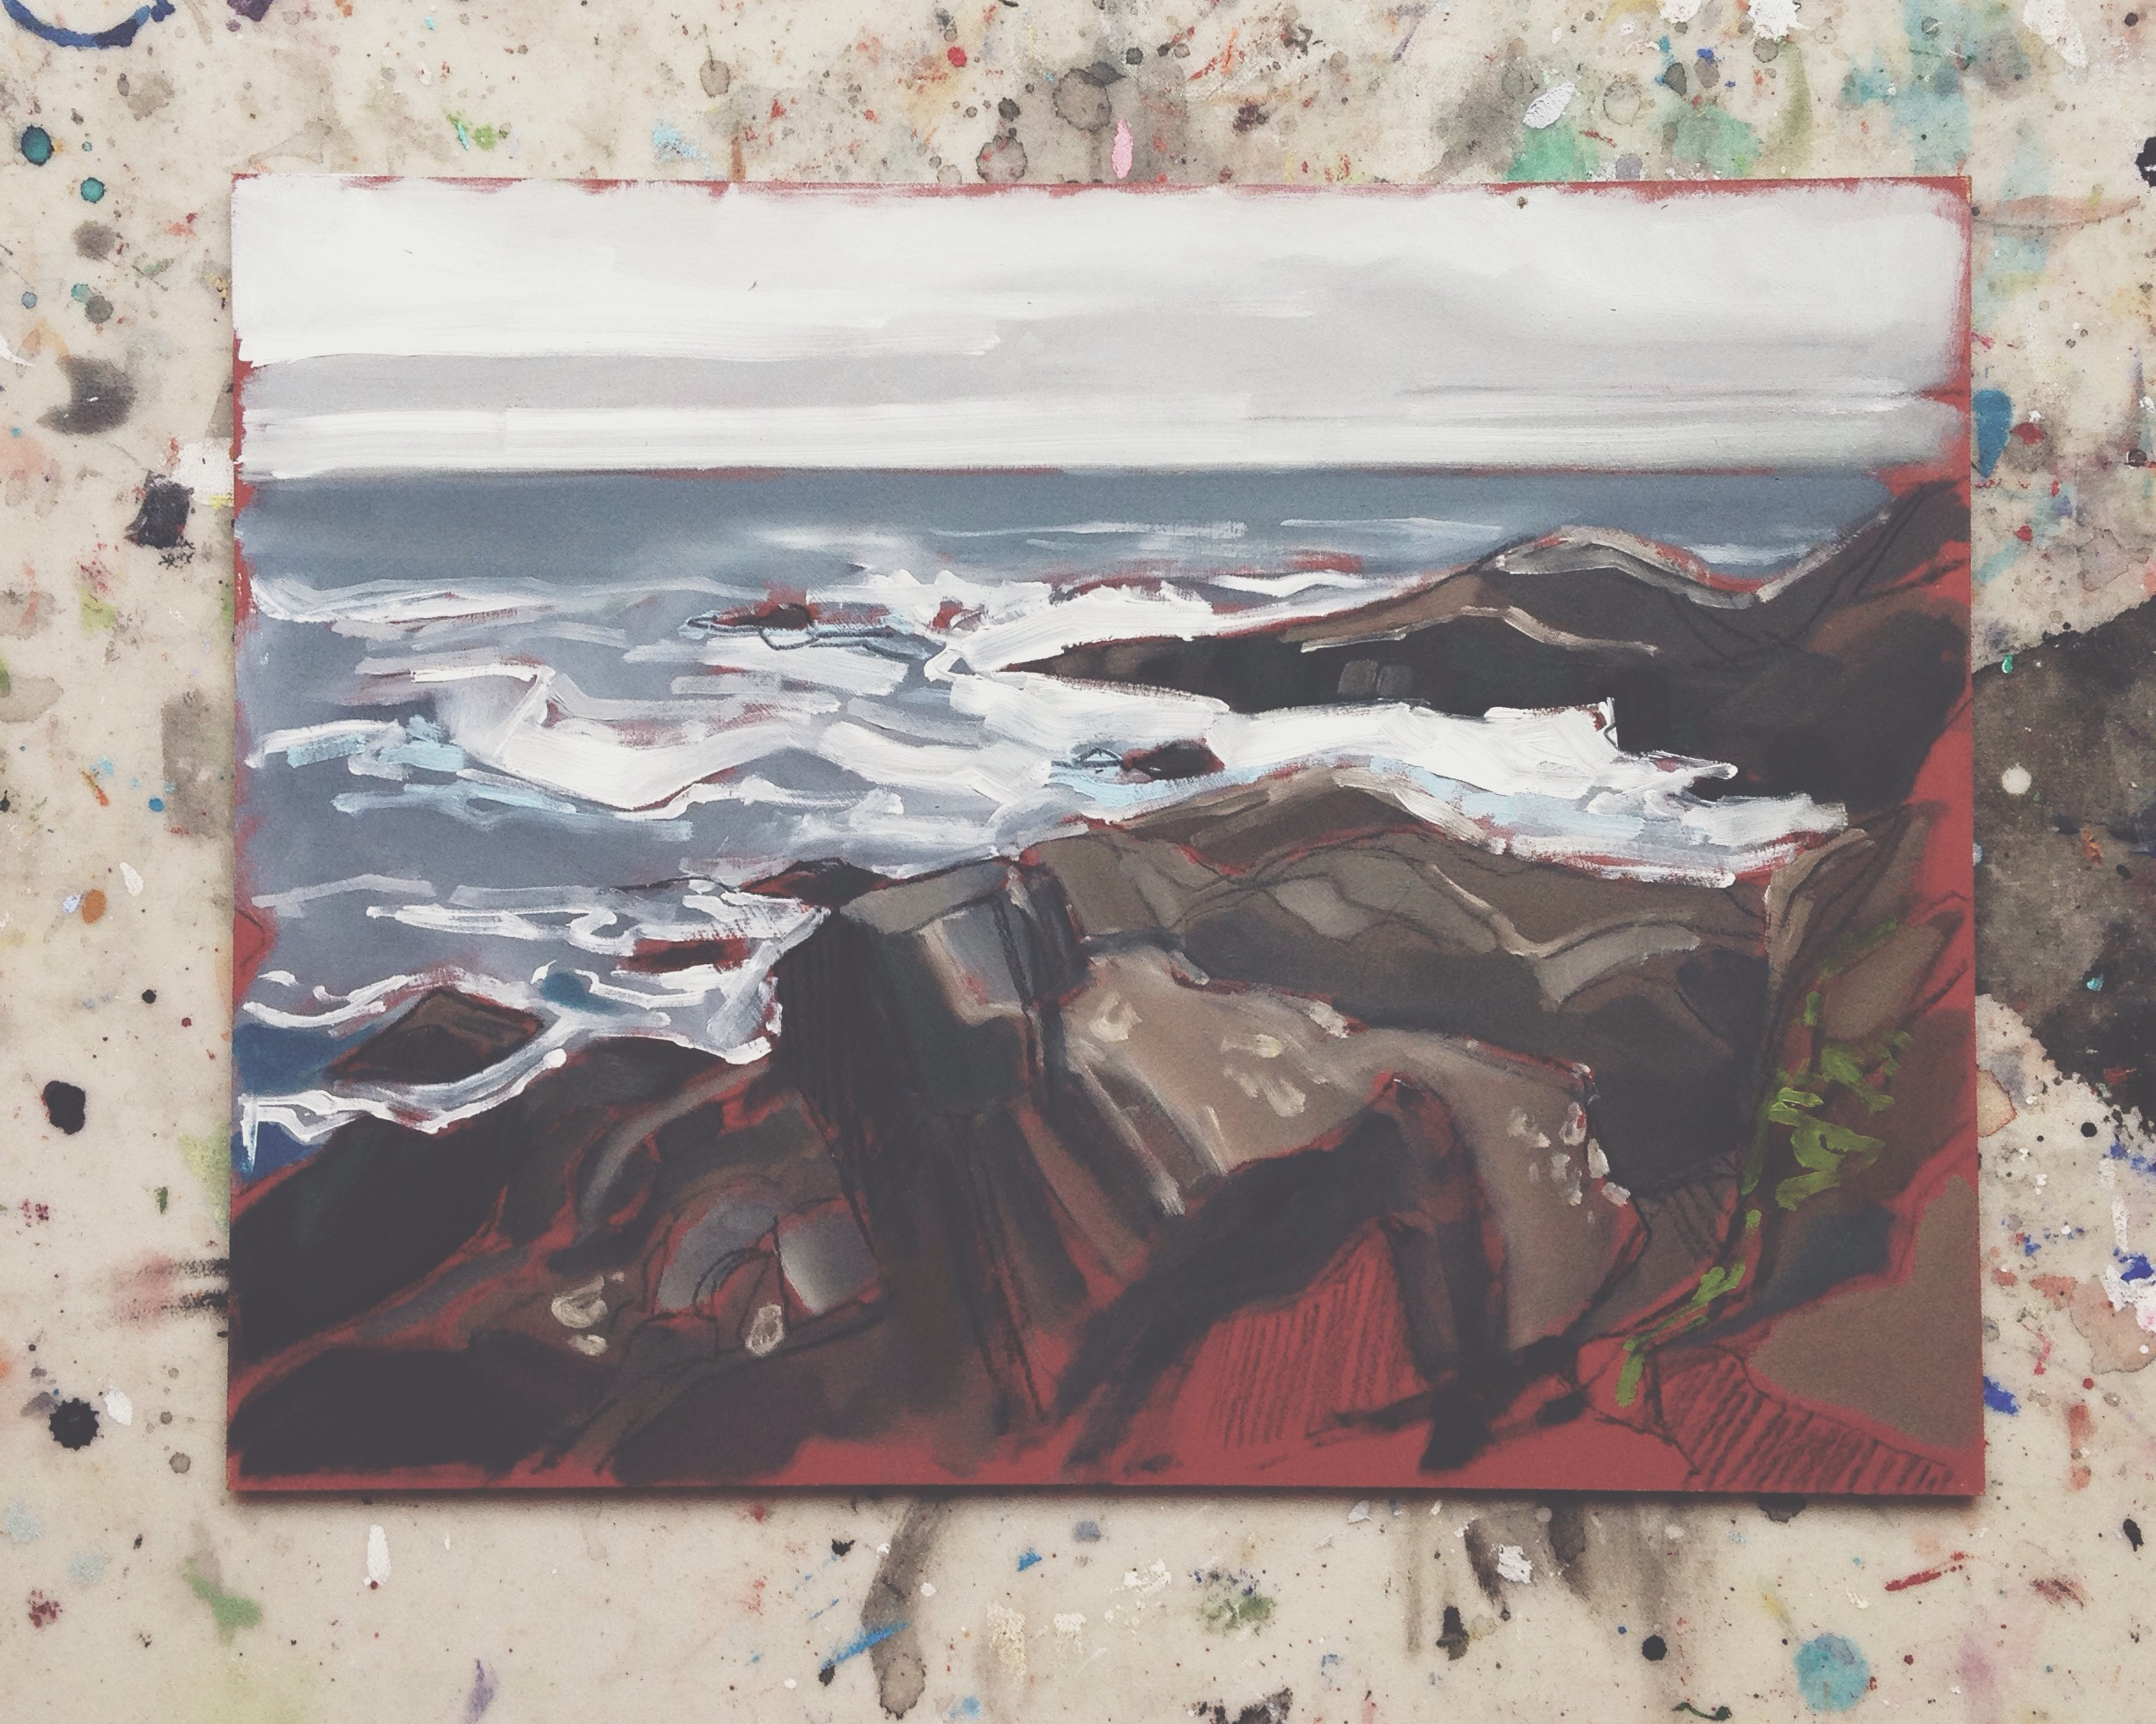 near amphritrite point, ucluelet, charcoal & oil on masonite, 9x12, 2016